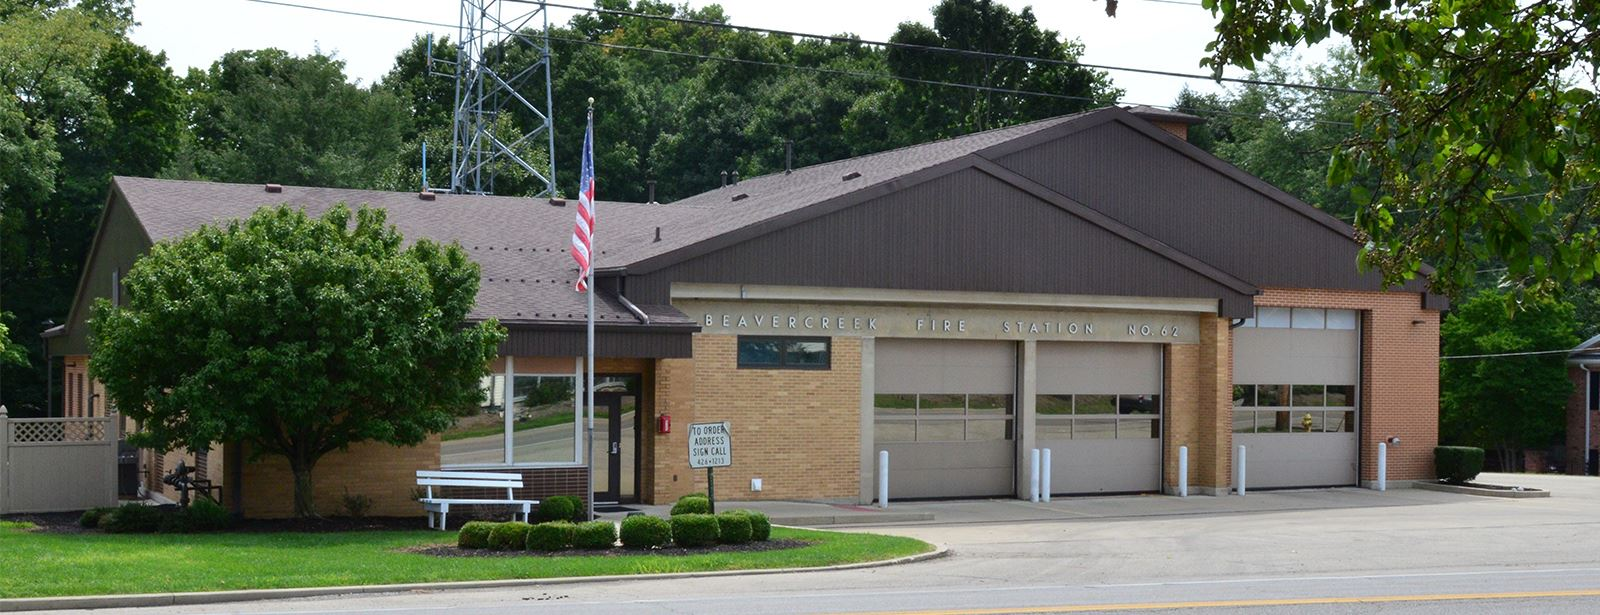 CPR & First Aid Classes | Beavercreek Township, OH